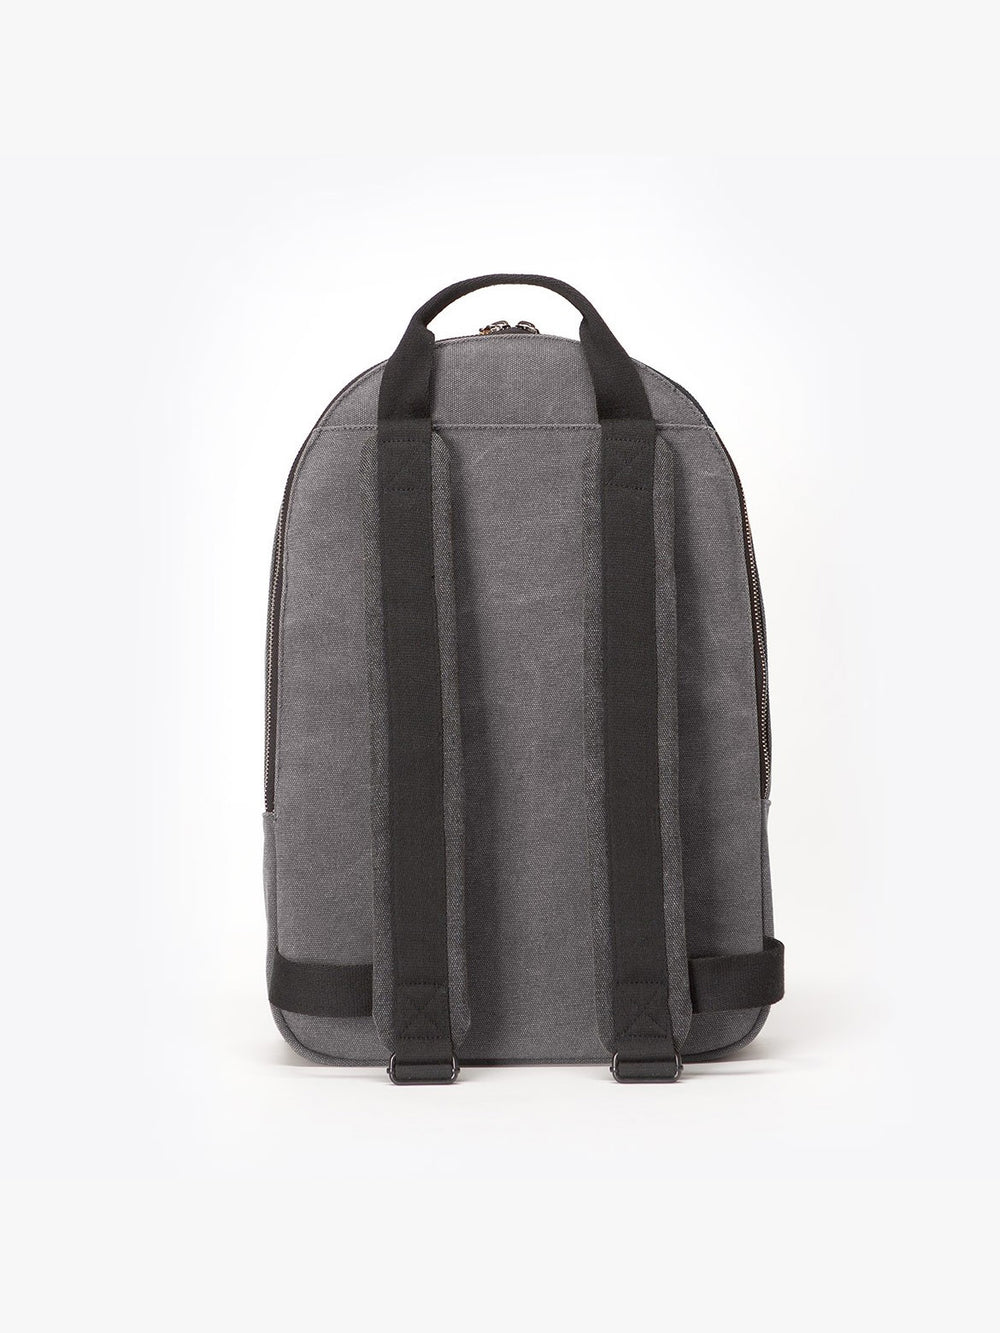 Marvin backpack padded shoulder straps